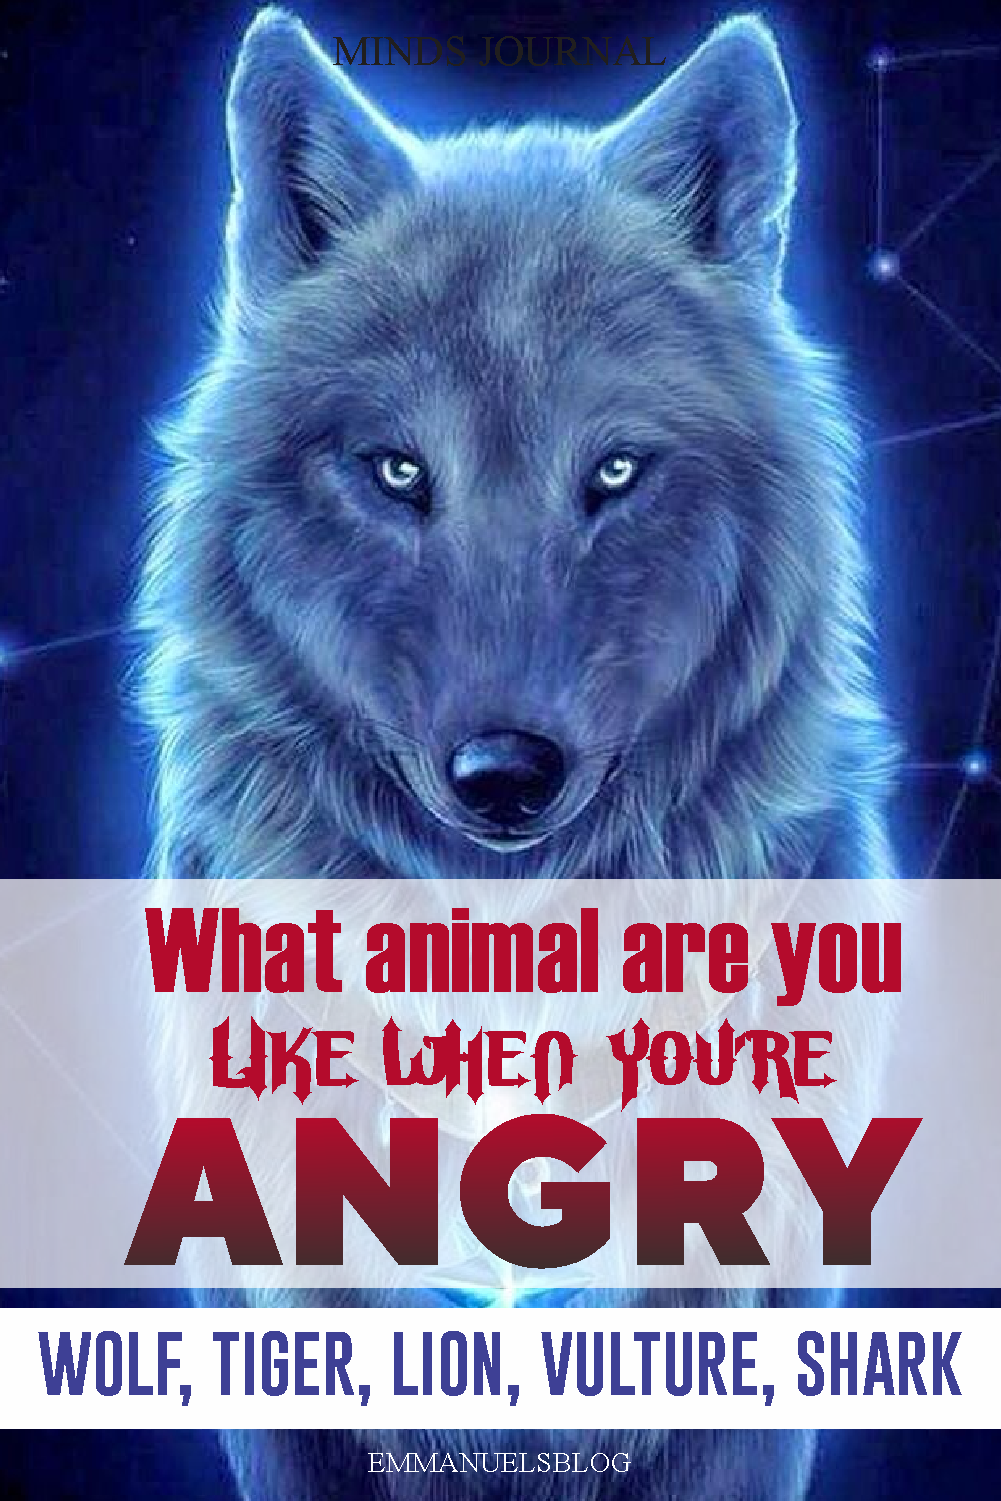 What Animal Are You Like When You're Angry? - This Qiuz REVEALS Who you are